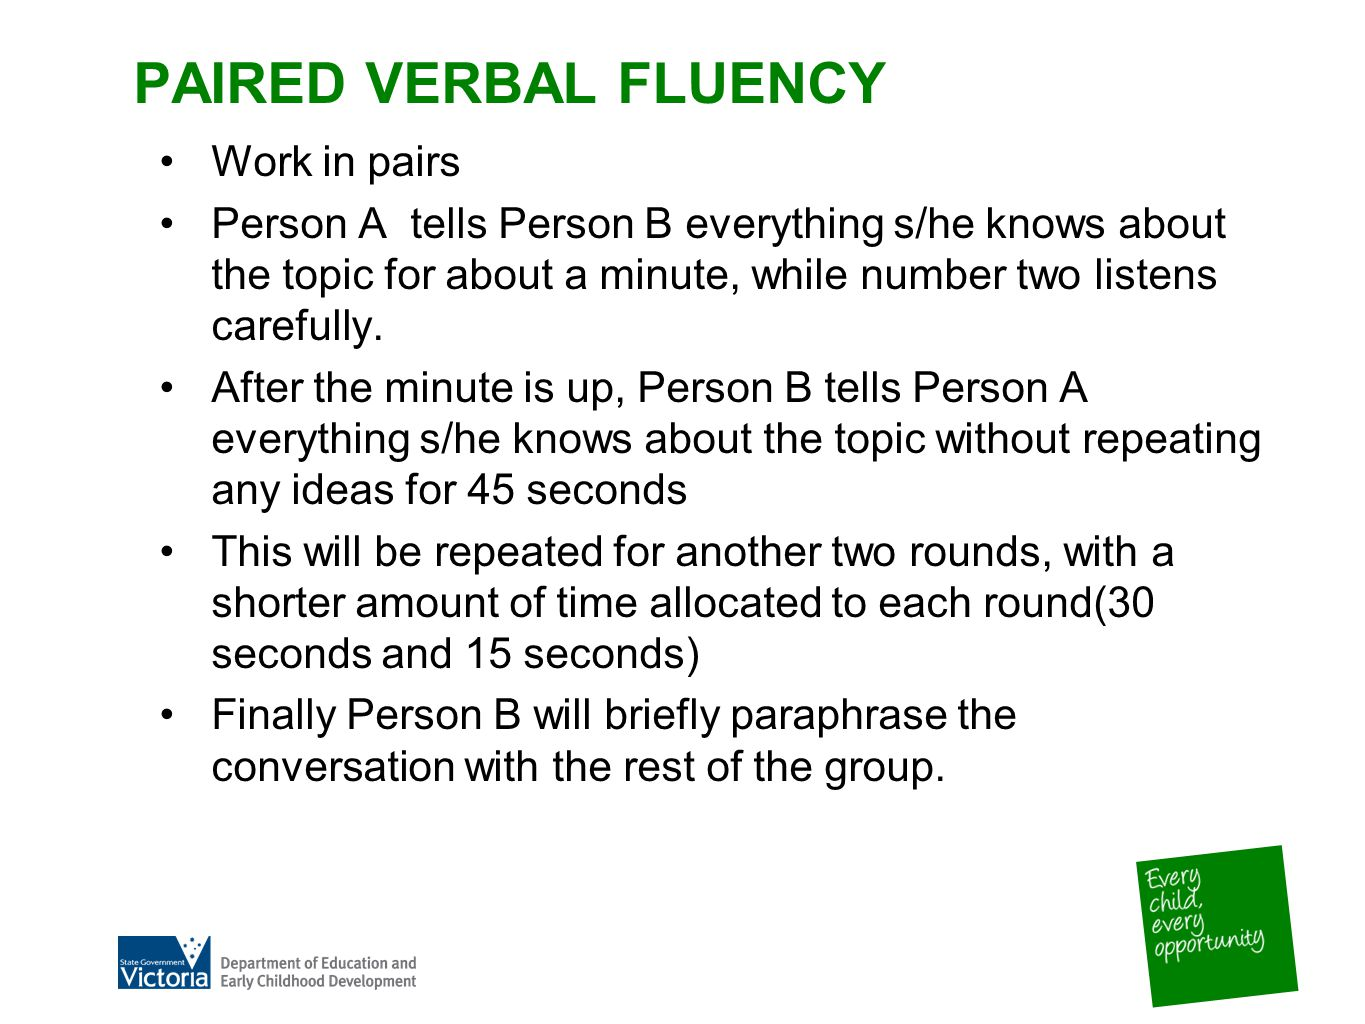 PAIRED VERBAL FLUENCY Work in pairs Person A tells Person B everything s/he knows about the topic for about a minute, while number two listens carefully.